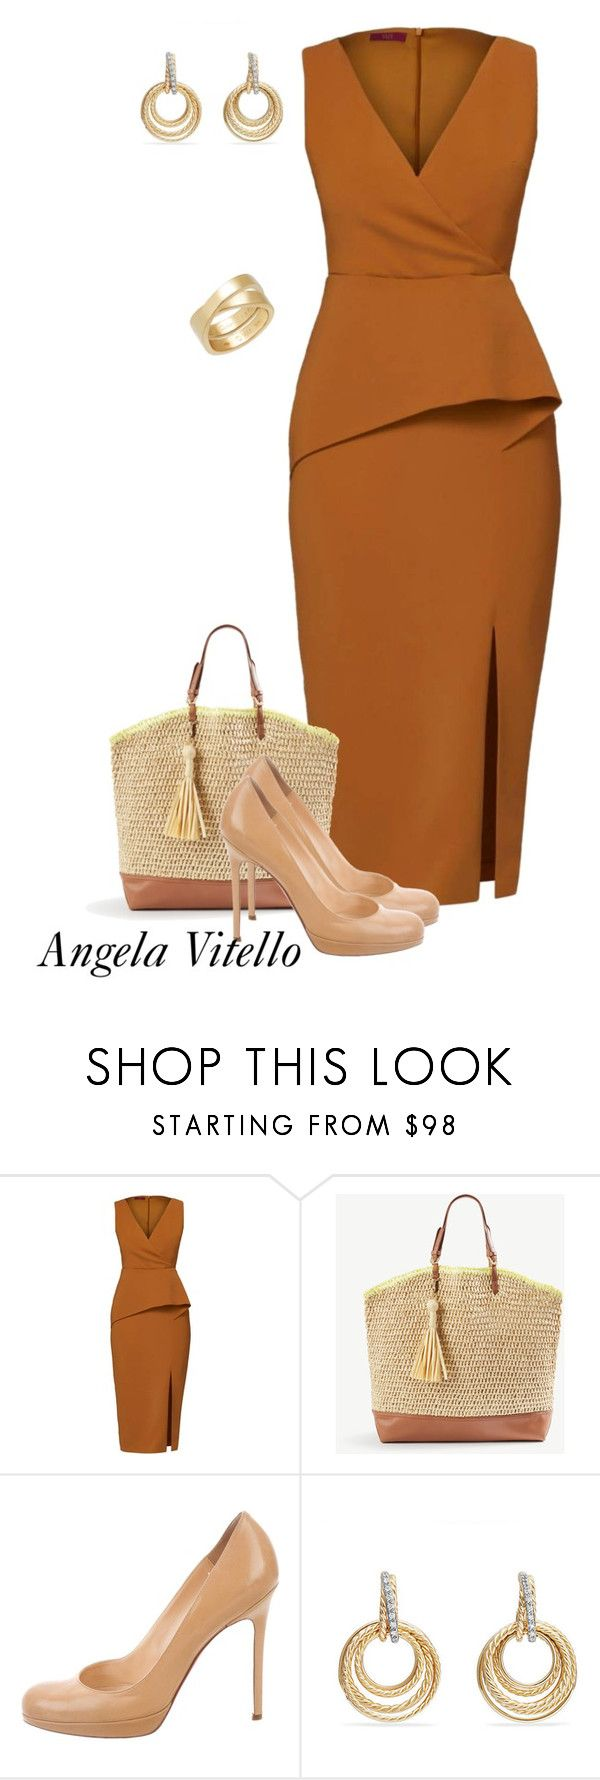 """""""Untitled #1005"""" by angela-vitello on Polyvore featuring WtR, Ann Taylor, Christian Louboutin, David Yurman and Cartier"""